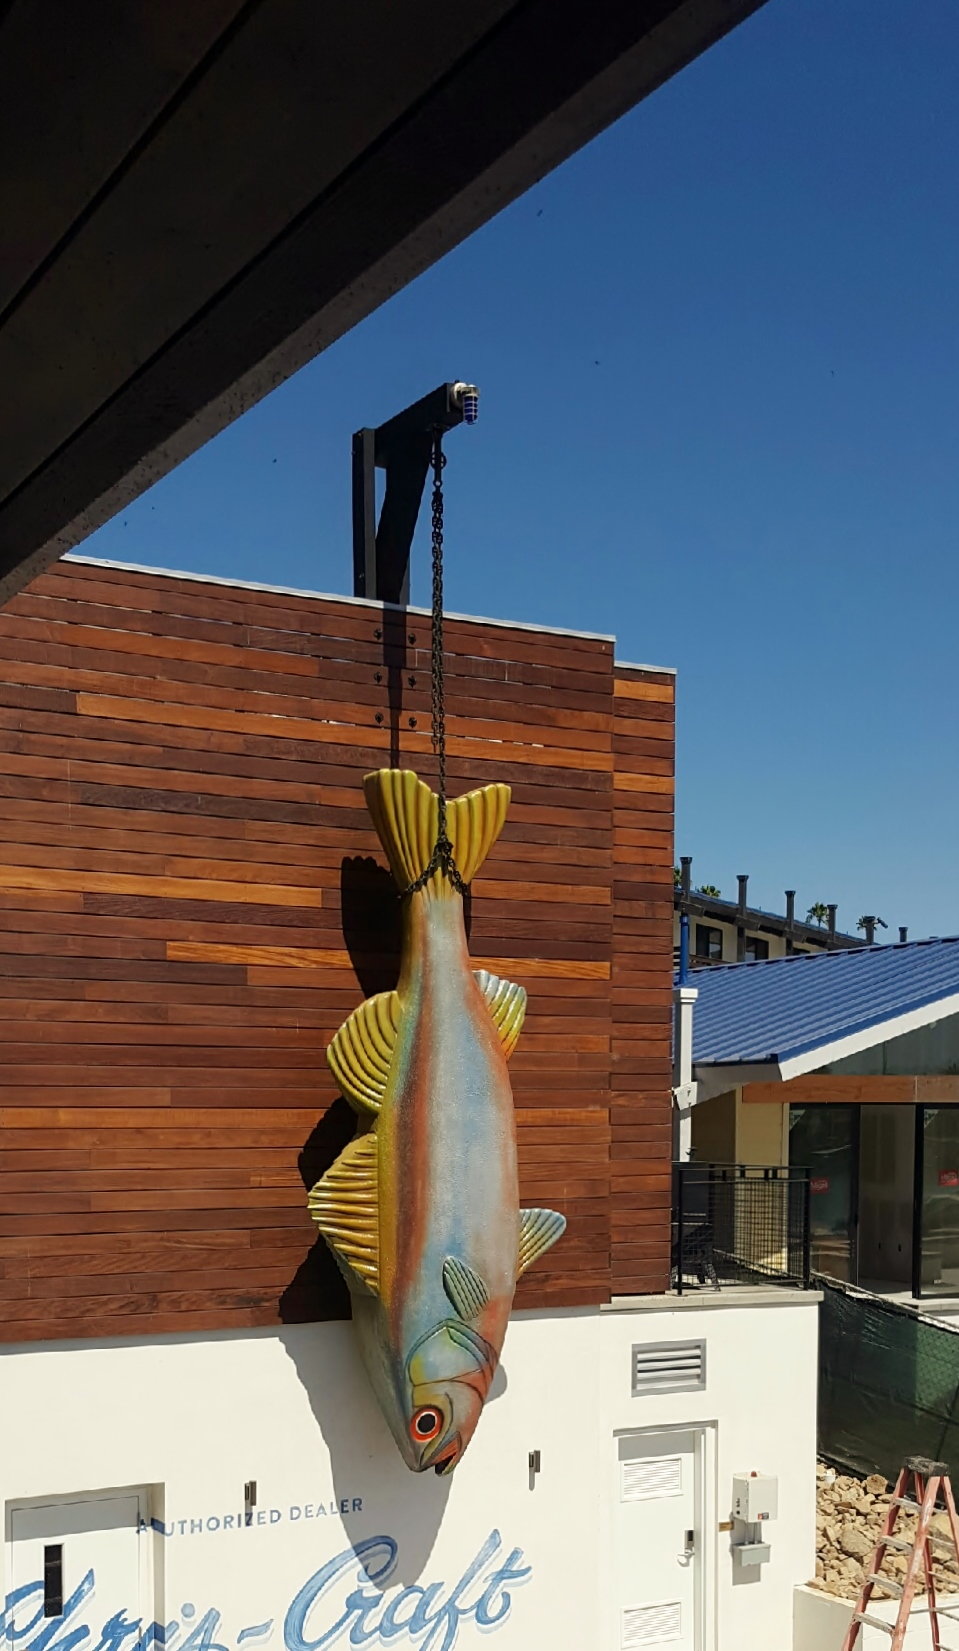 Decoy Restaurant 17 ft long Fish